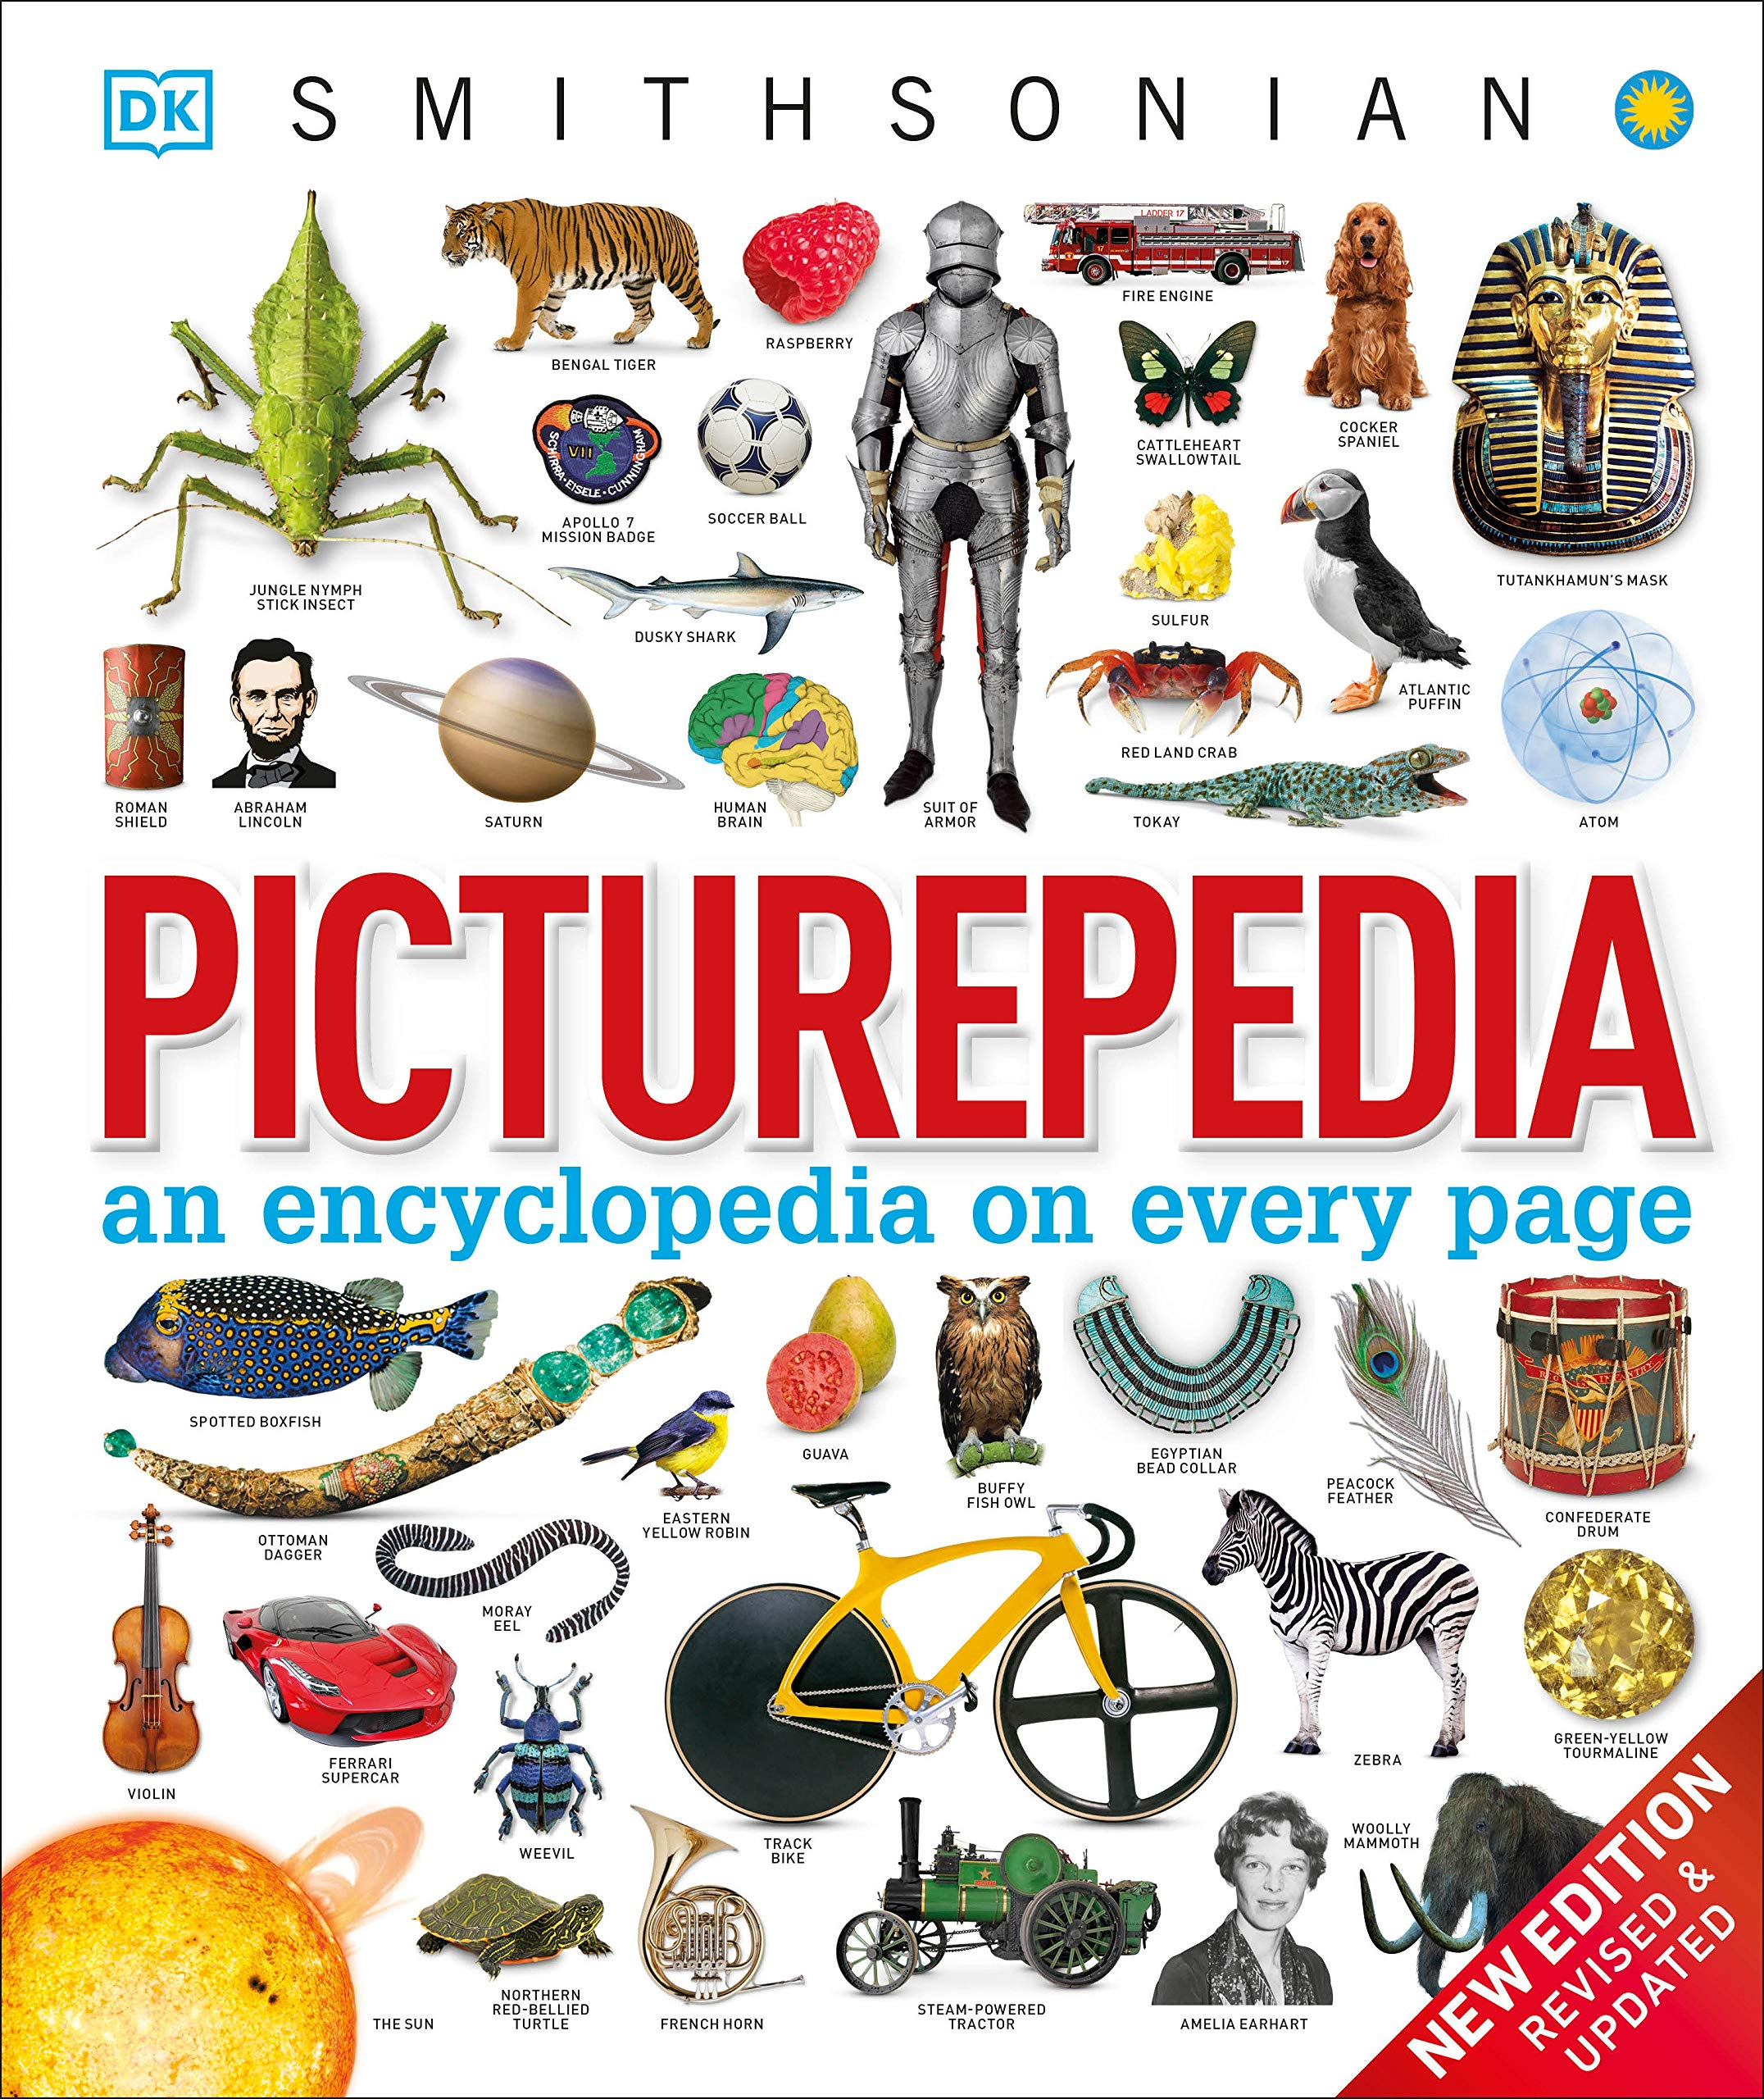 Picturepedia, Second Edition: An Encyclopedia on Every Page: DK,  Smithsonian Institution: 9781465438287: Amazon.com: Books